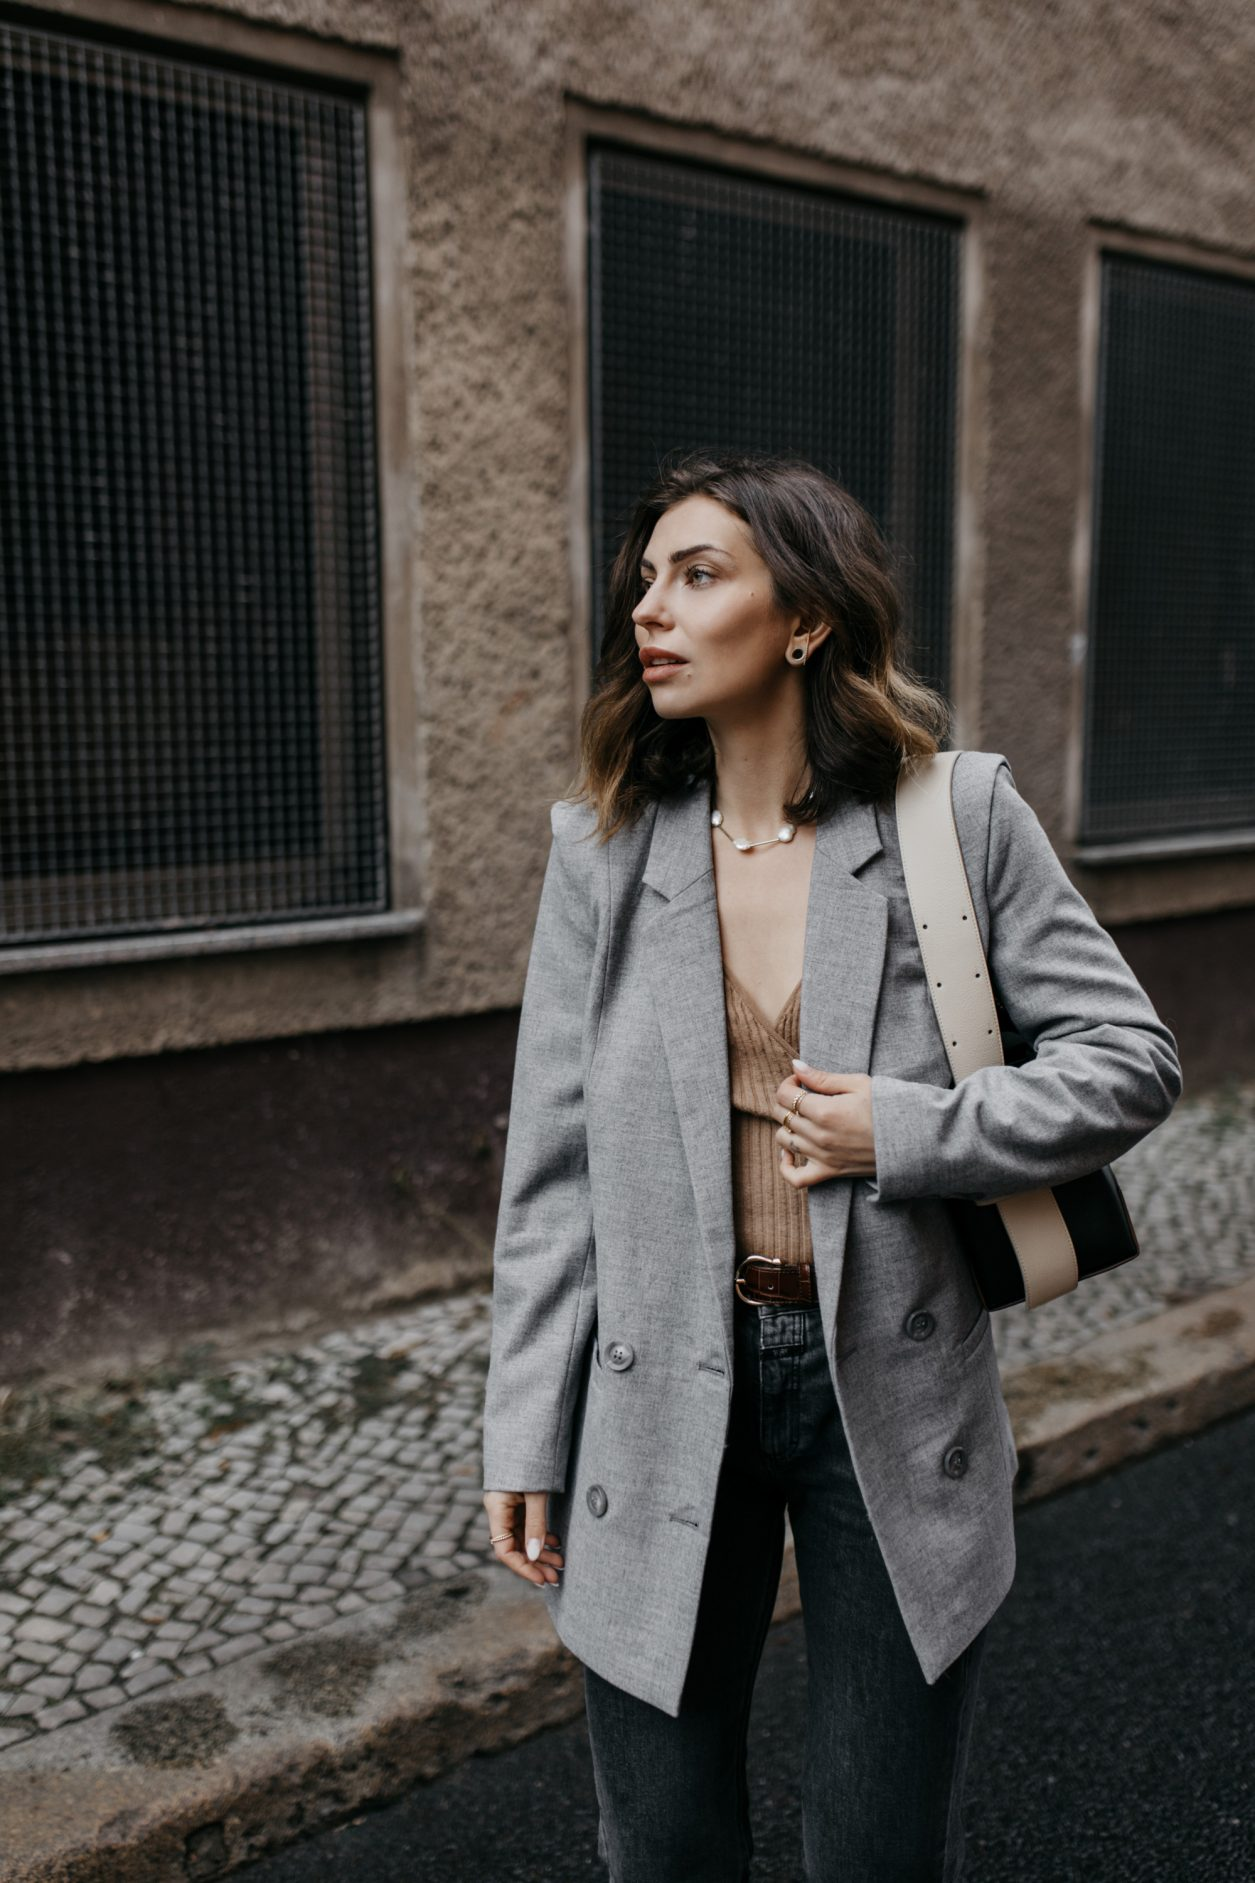 Streetstyle by Masha Sedgwick | Early spring city outfit inspiration, wearing beige classic Closed coat, beige-brown-black Yuzefi shoulder bag, grey Closed jeans, black &other Stories loafer with zipper, grey socks, grey Gestuz blazer, wrapped brown Baum & Pferdgarten shirt | Berlin street style editorial shooting